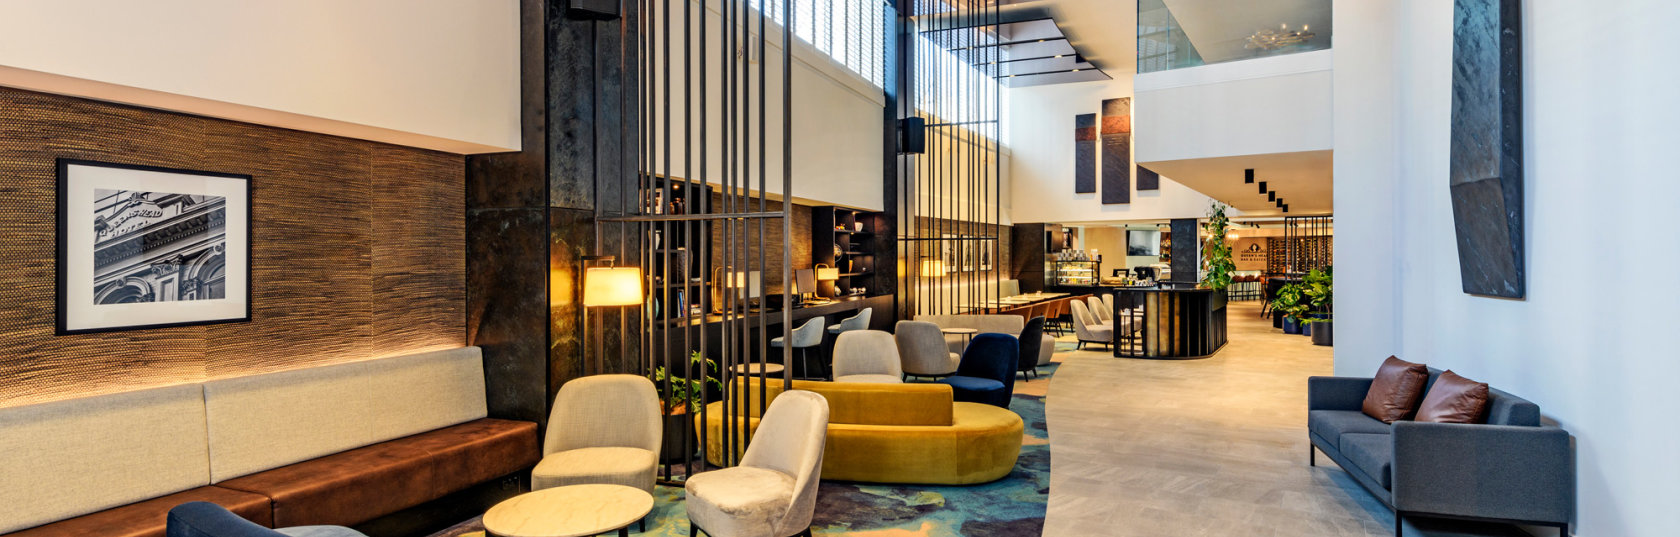 Kiwi-inspired: the lush interiors of the Four Points by Sheraton